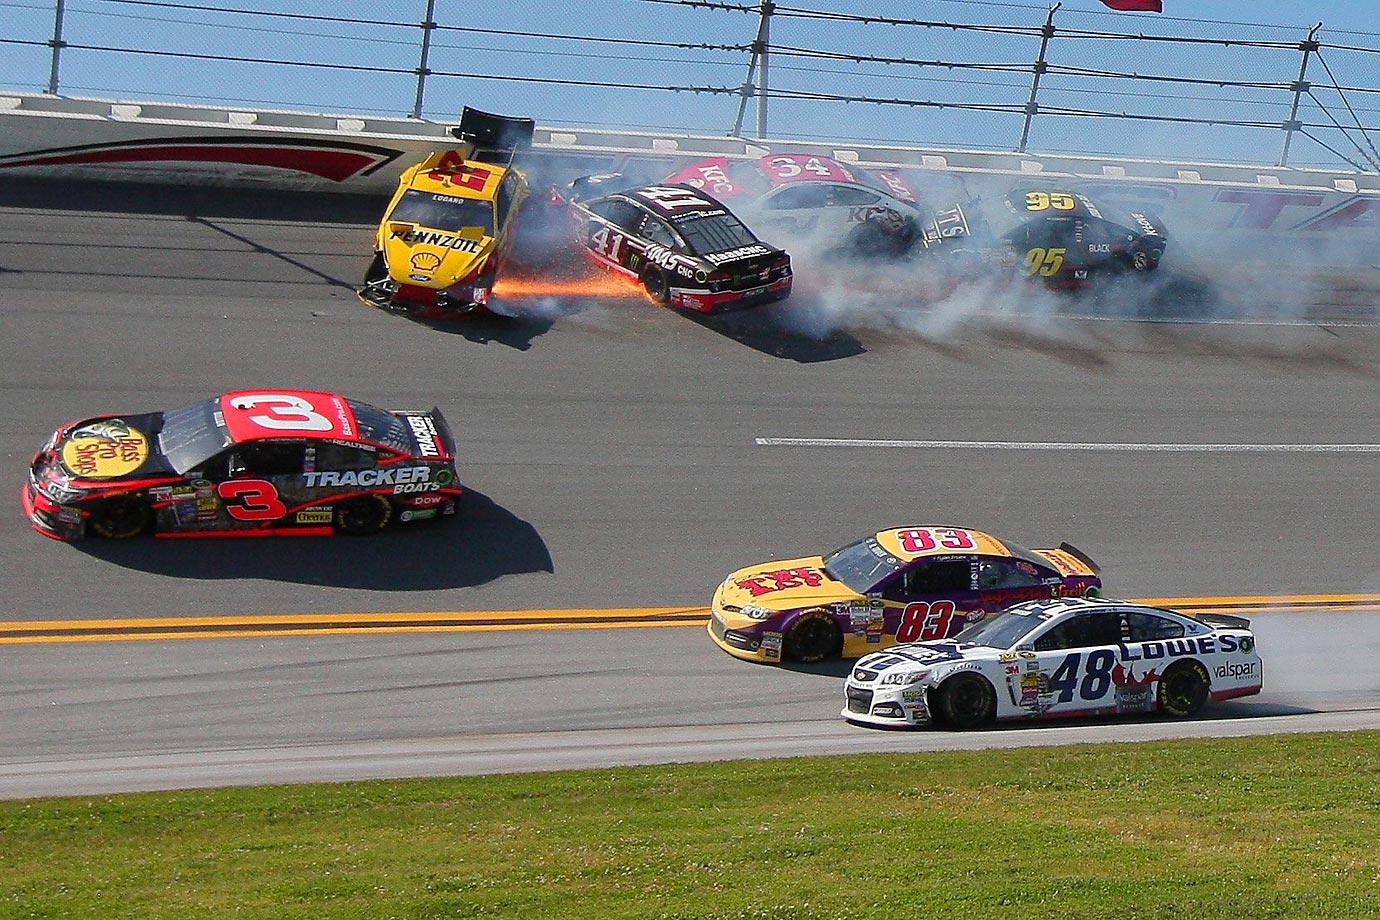 On lap 137, Brad Keselowski, who was six laps down, got loose in turn 4 and caused a multi-car wreck that collected 13 other cars that included Jeff Gordon, Matt Kenseth, Trevor Bayne, Tony Stewart and Brian Scott. Some had issues with Keselowski racing at the front with being so many laps behind the leaders. & With 14 laps to go, Jimmie Johnson got loose and started another multi-car wreck that happened in the same place that the lap 137 wreck occurred. This wreck collected Kurt Busch, Joey Logano, Michael McDowell, Ryan Newman, David Ragan, Ricky Stenhouse, Jr. and Reed Sorenson.